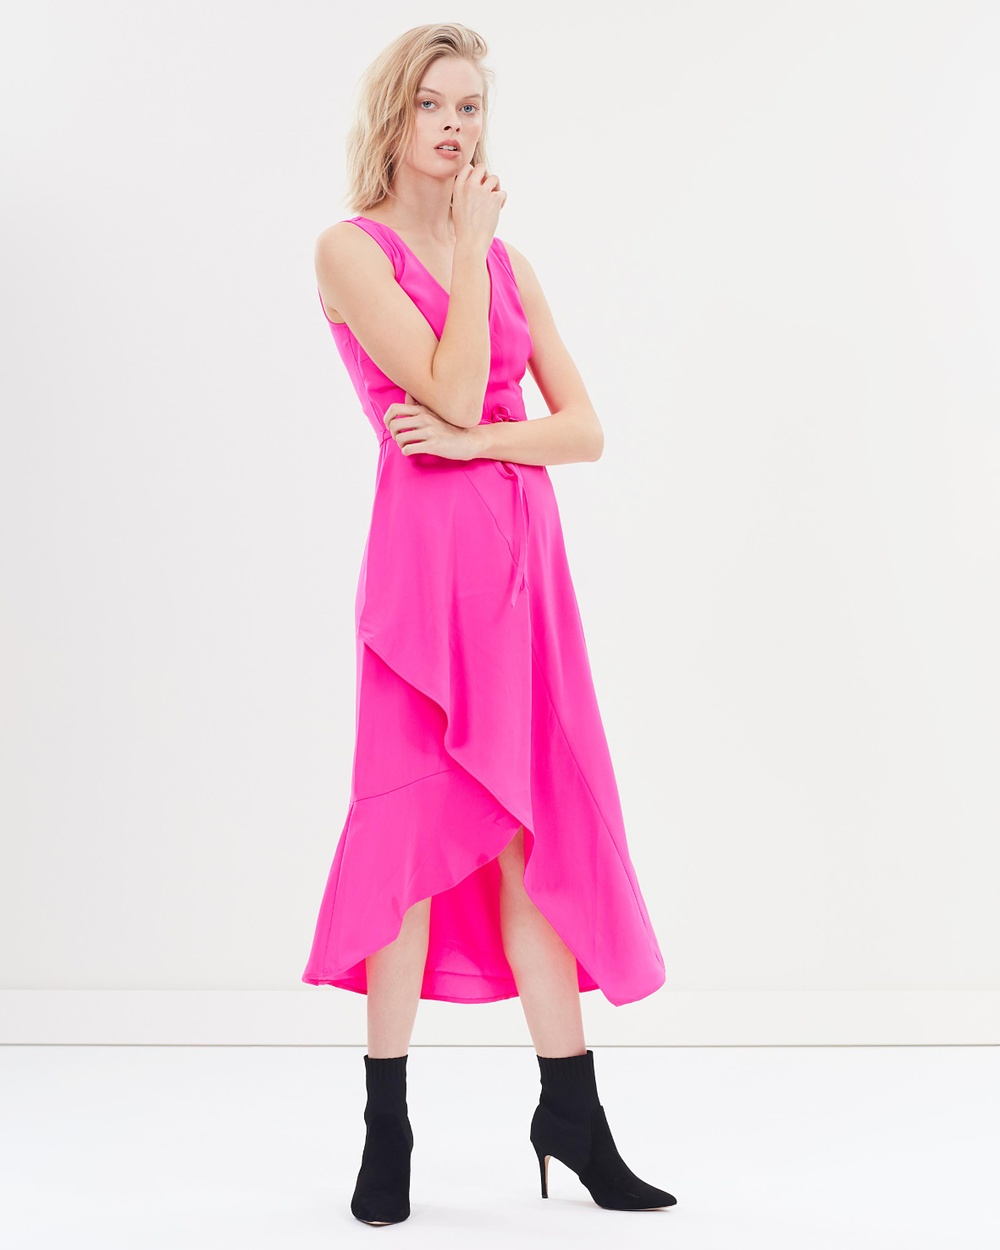 Warehouse Wrap Asymmetric Dress Dresses Pink Wrap Asymmetric Dress